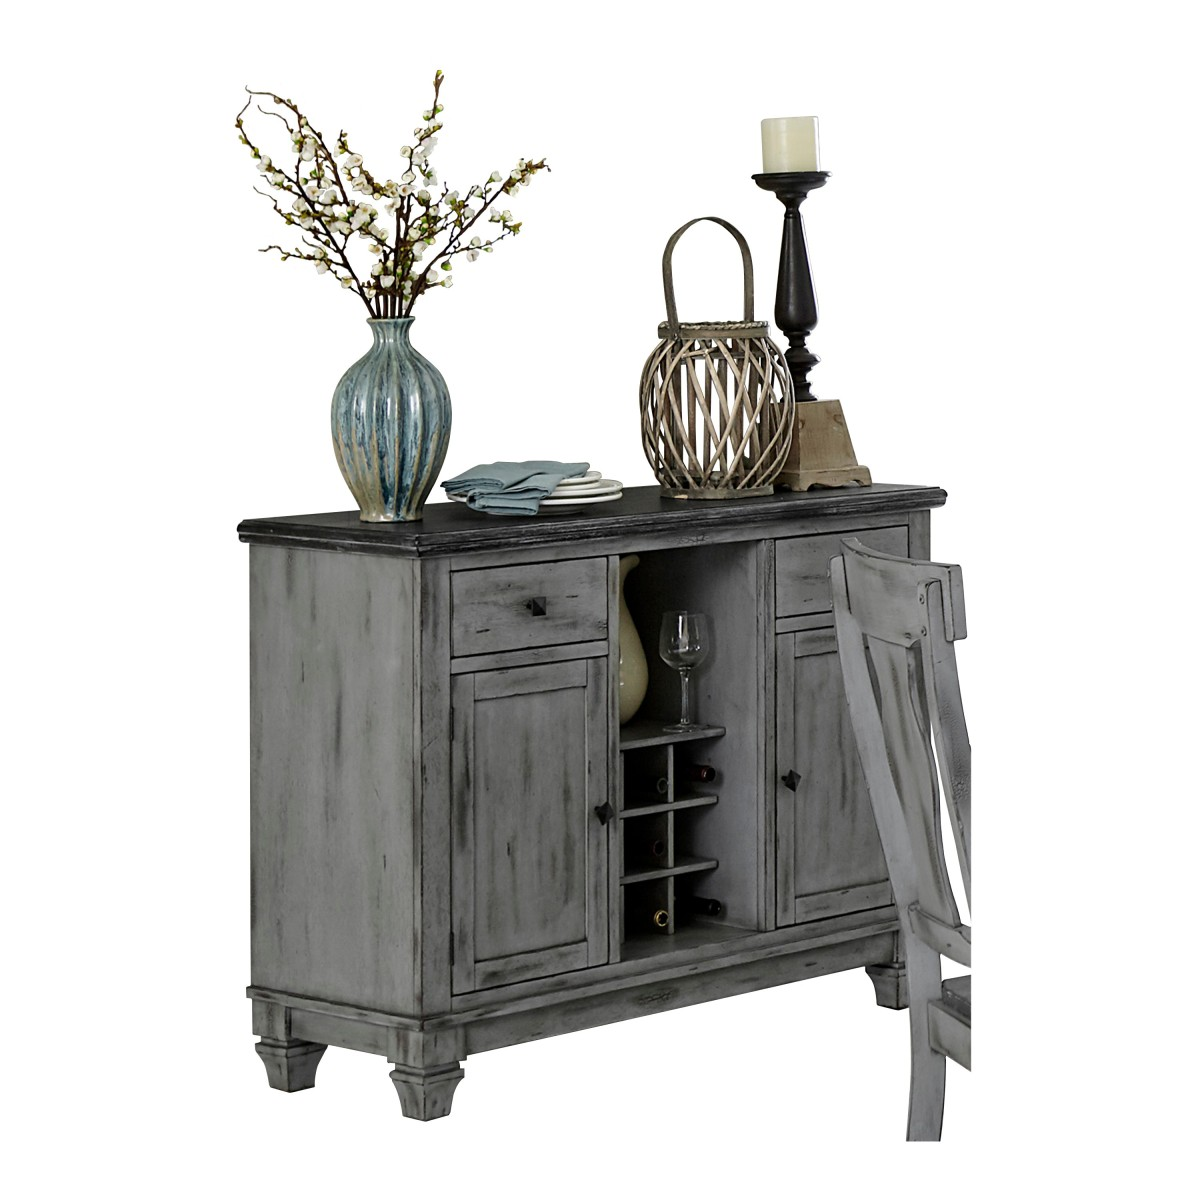 Homelegance 5520-40 Fulbright weathered gray rub through finish wood dining server buffet sideboard